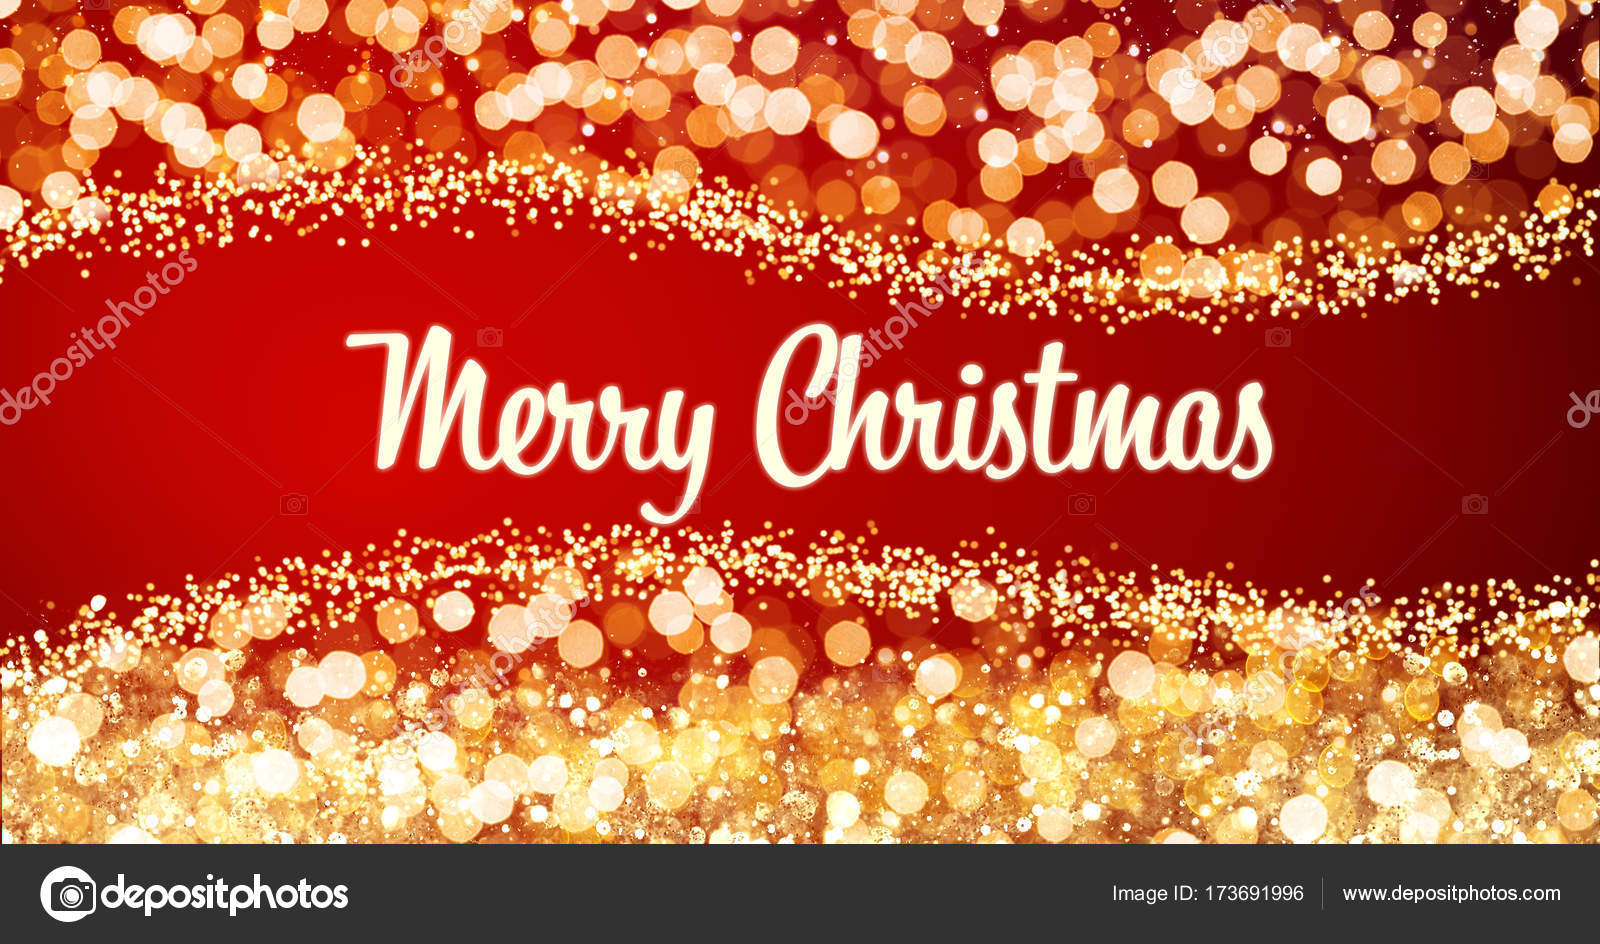 Sparkling Gold And Silver Xmas Lights With Merry Christmas Greeting